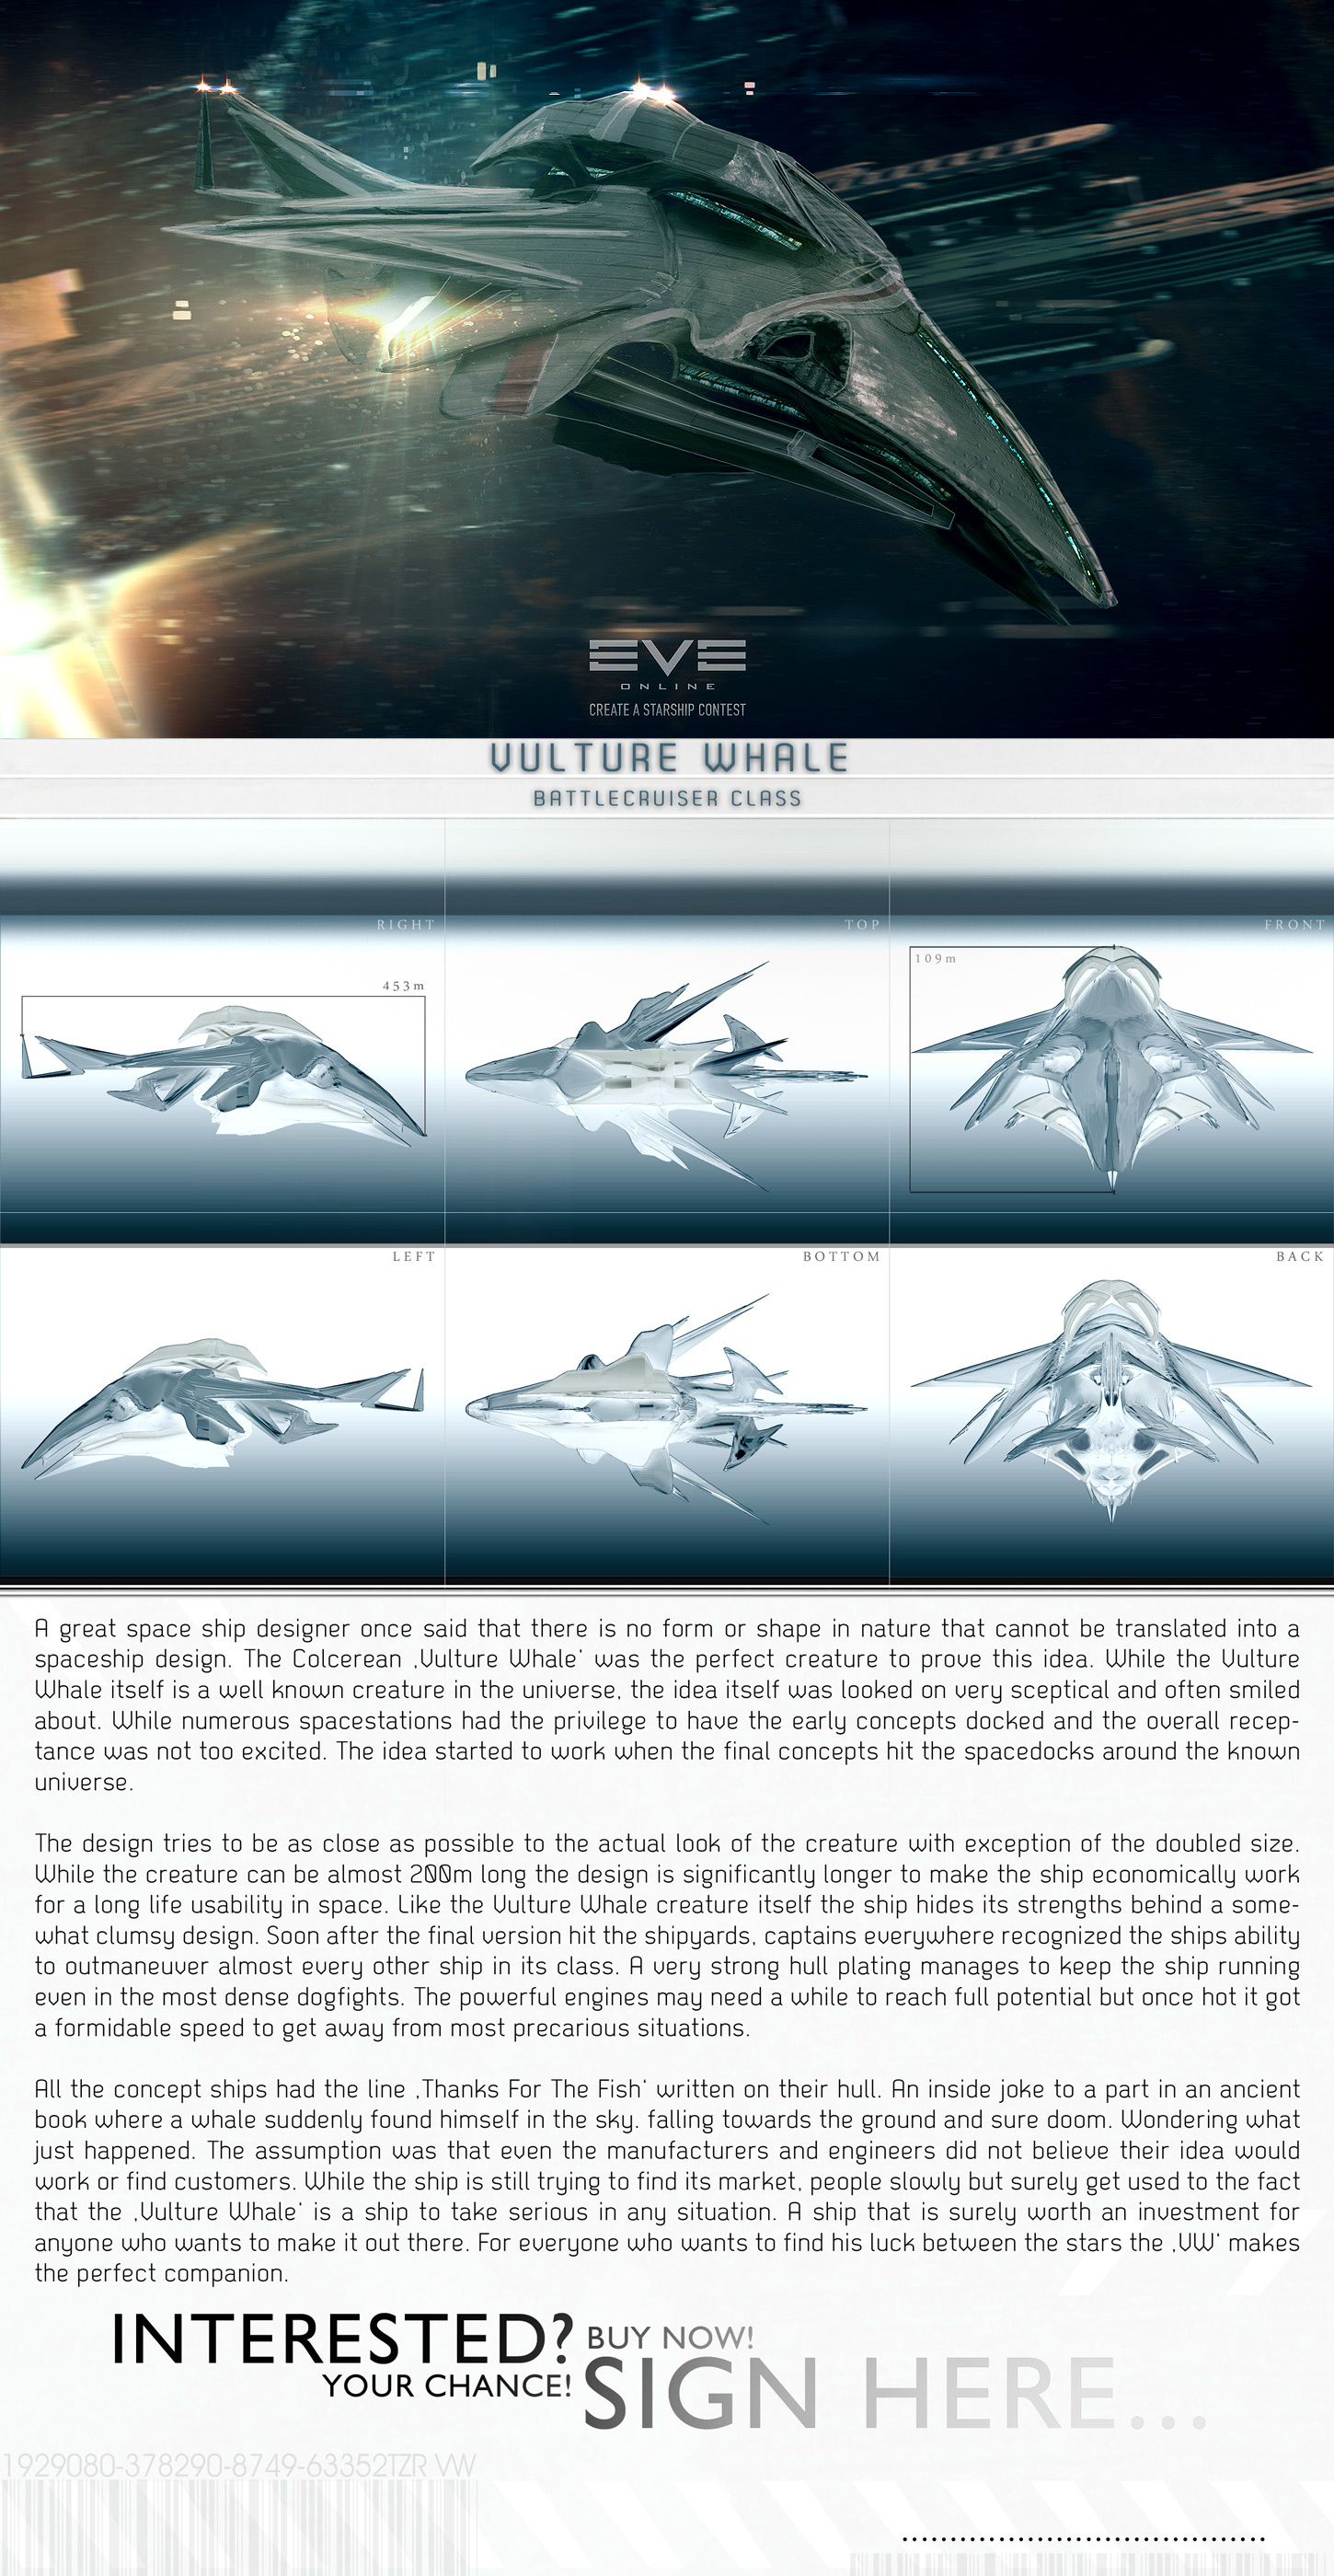 EvE Ship - 2 Vulture Whale by tigaer